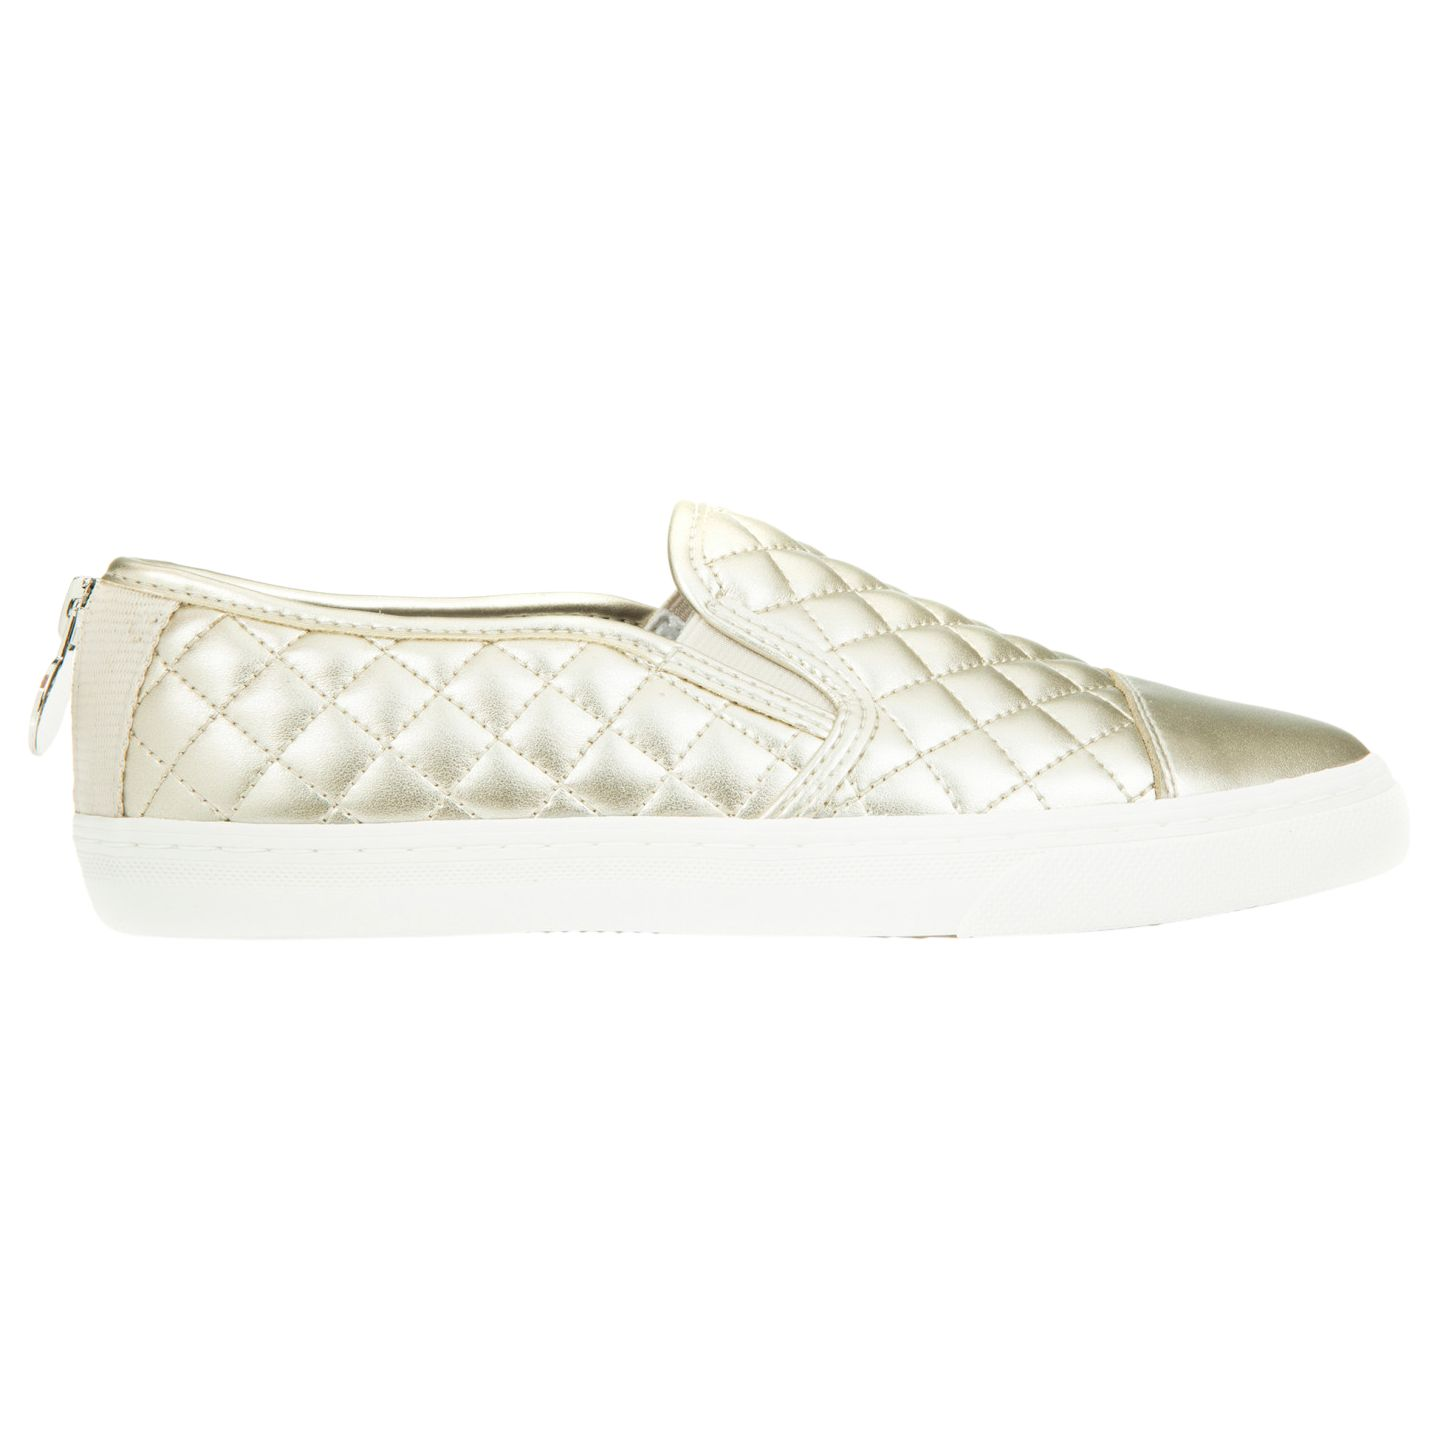 Geox Geox New Club Material Slip On Trainers